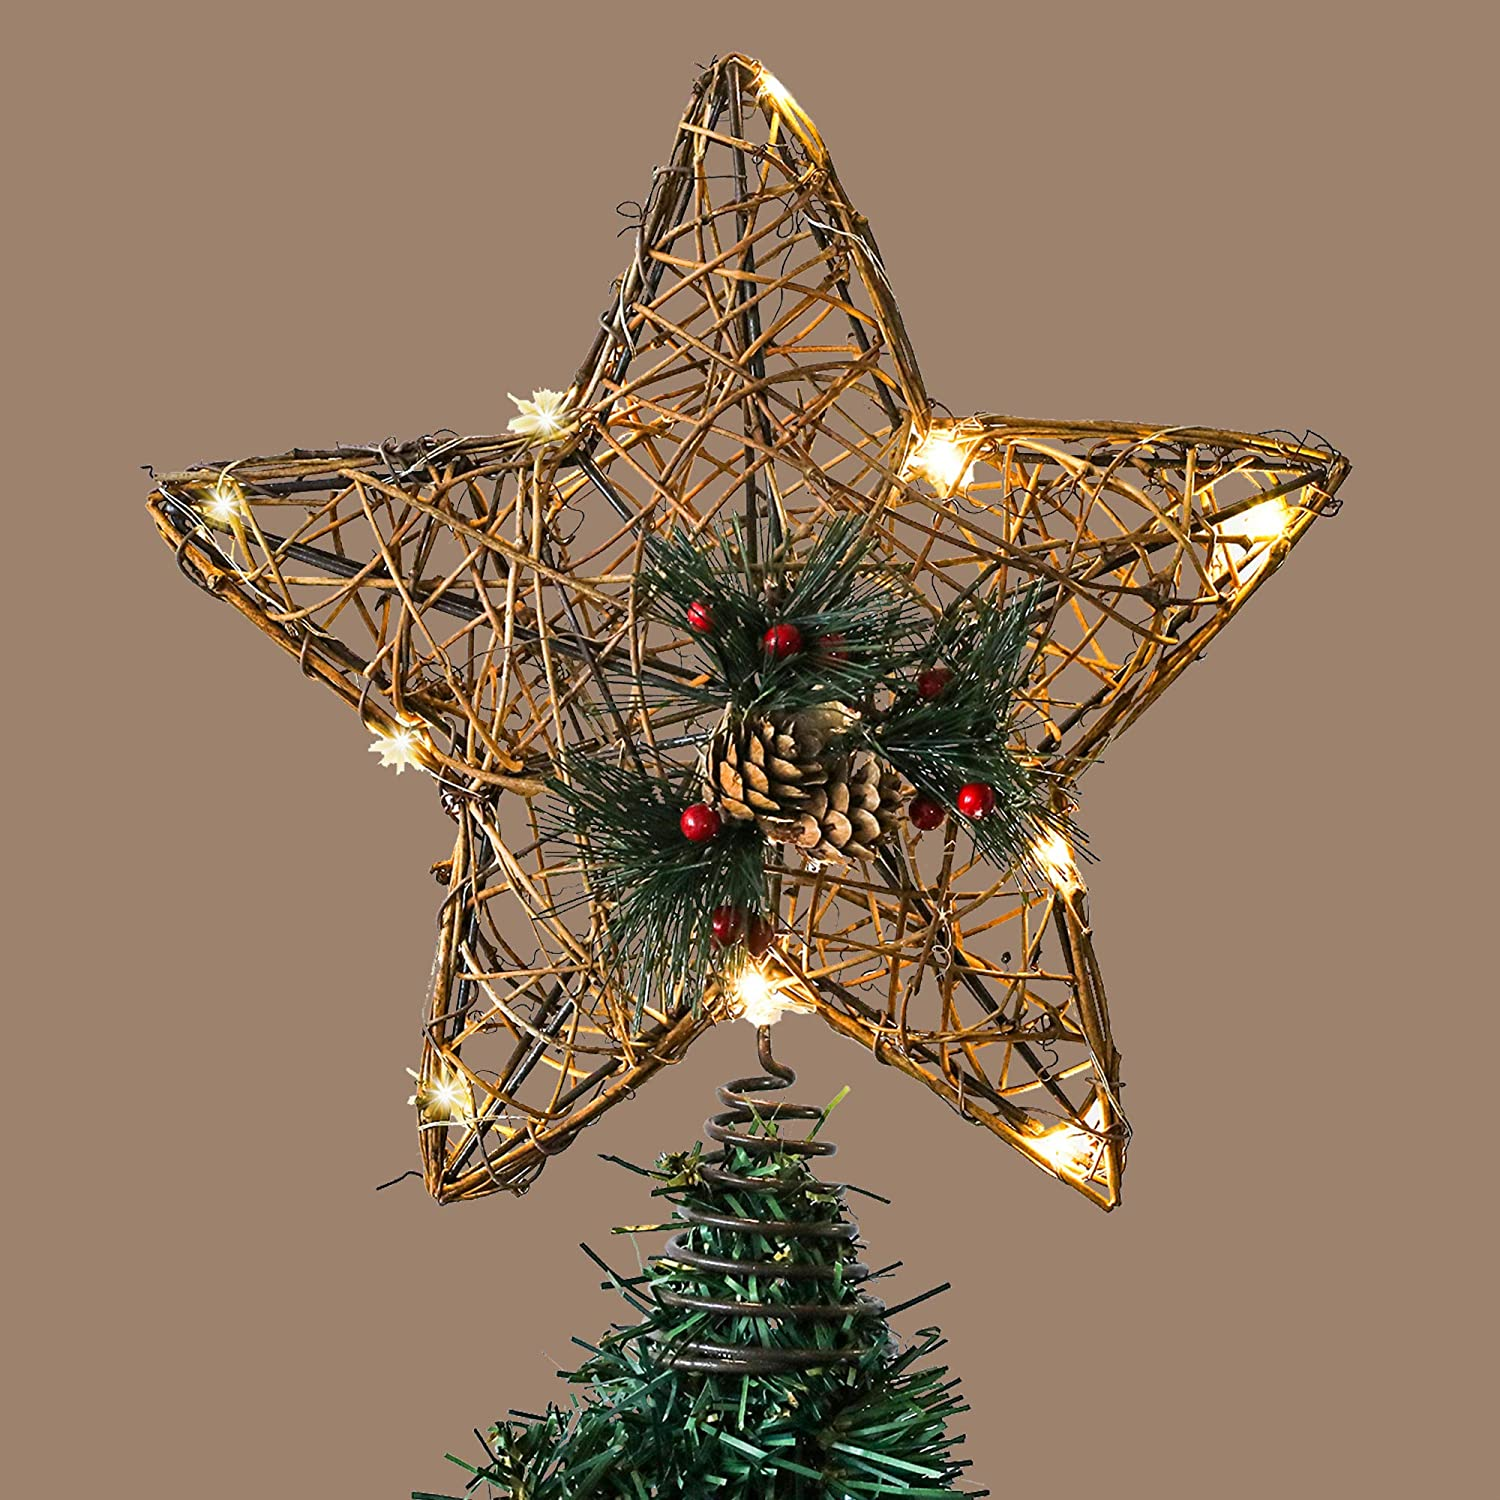 Christmas Decorations Battery Operated Not Included Valery Madelyn Christmas Tree Topper Sparkling Winter 12.2Inch//31cm Pre-Lit Copper Rattan Star Tree Decoration with 10 Warm LED Lights